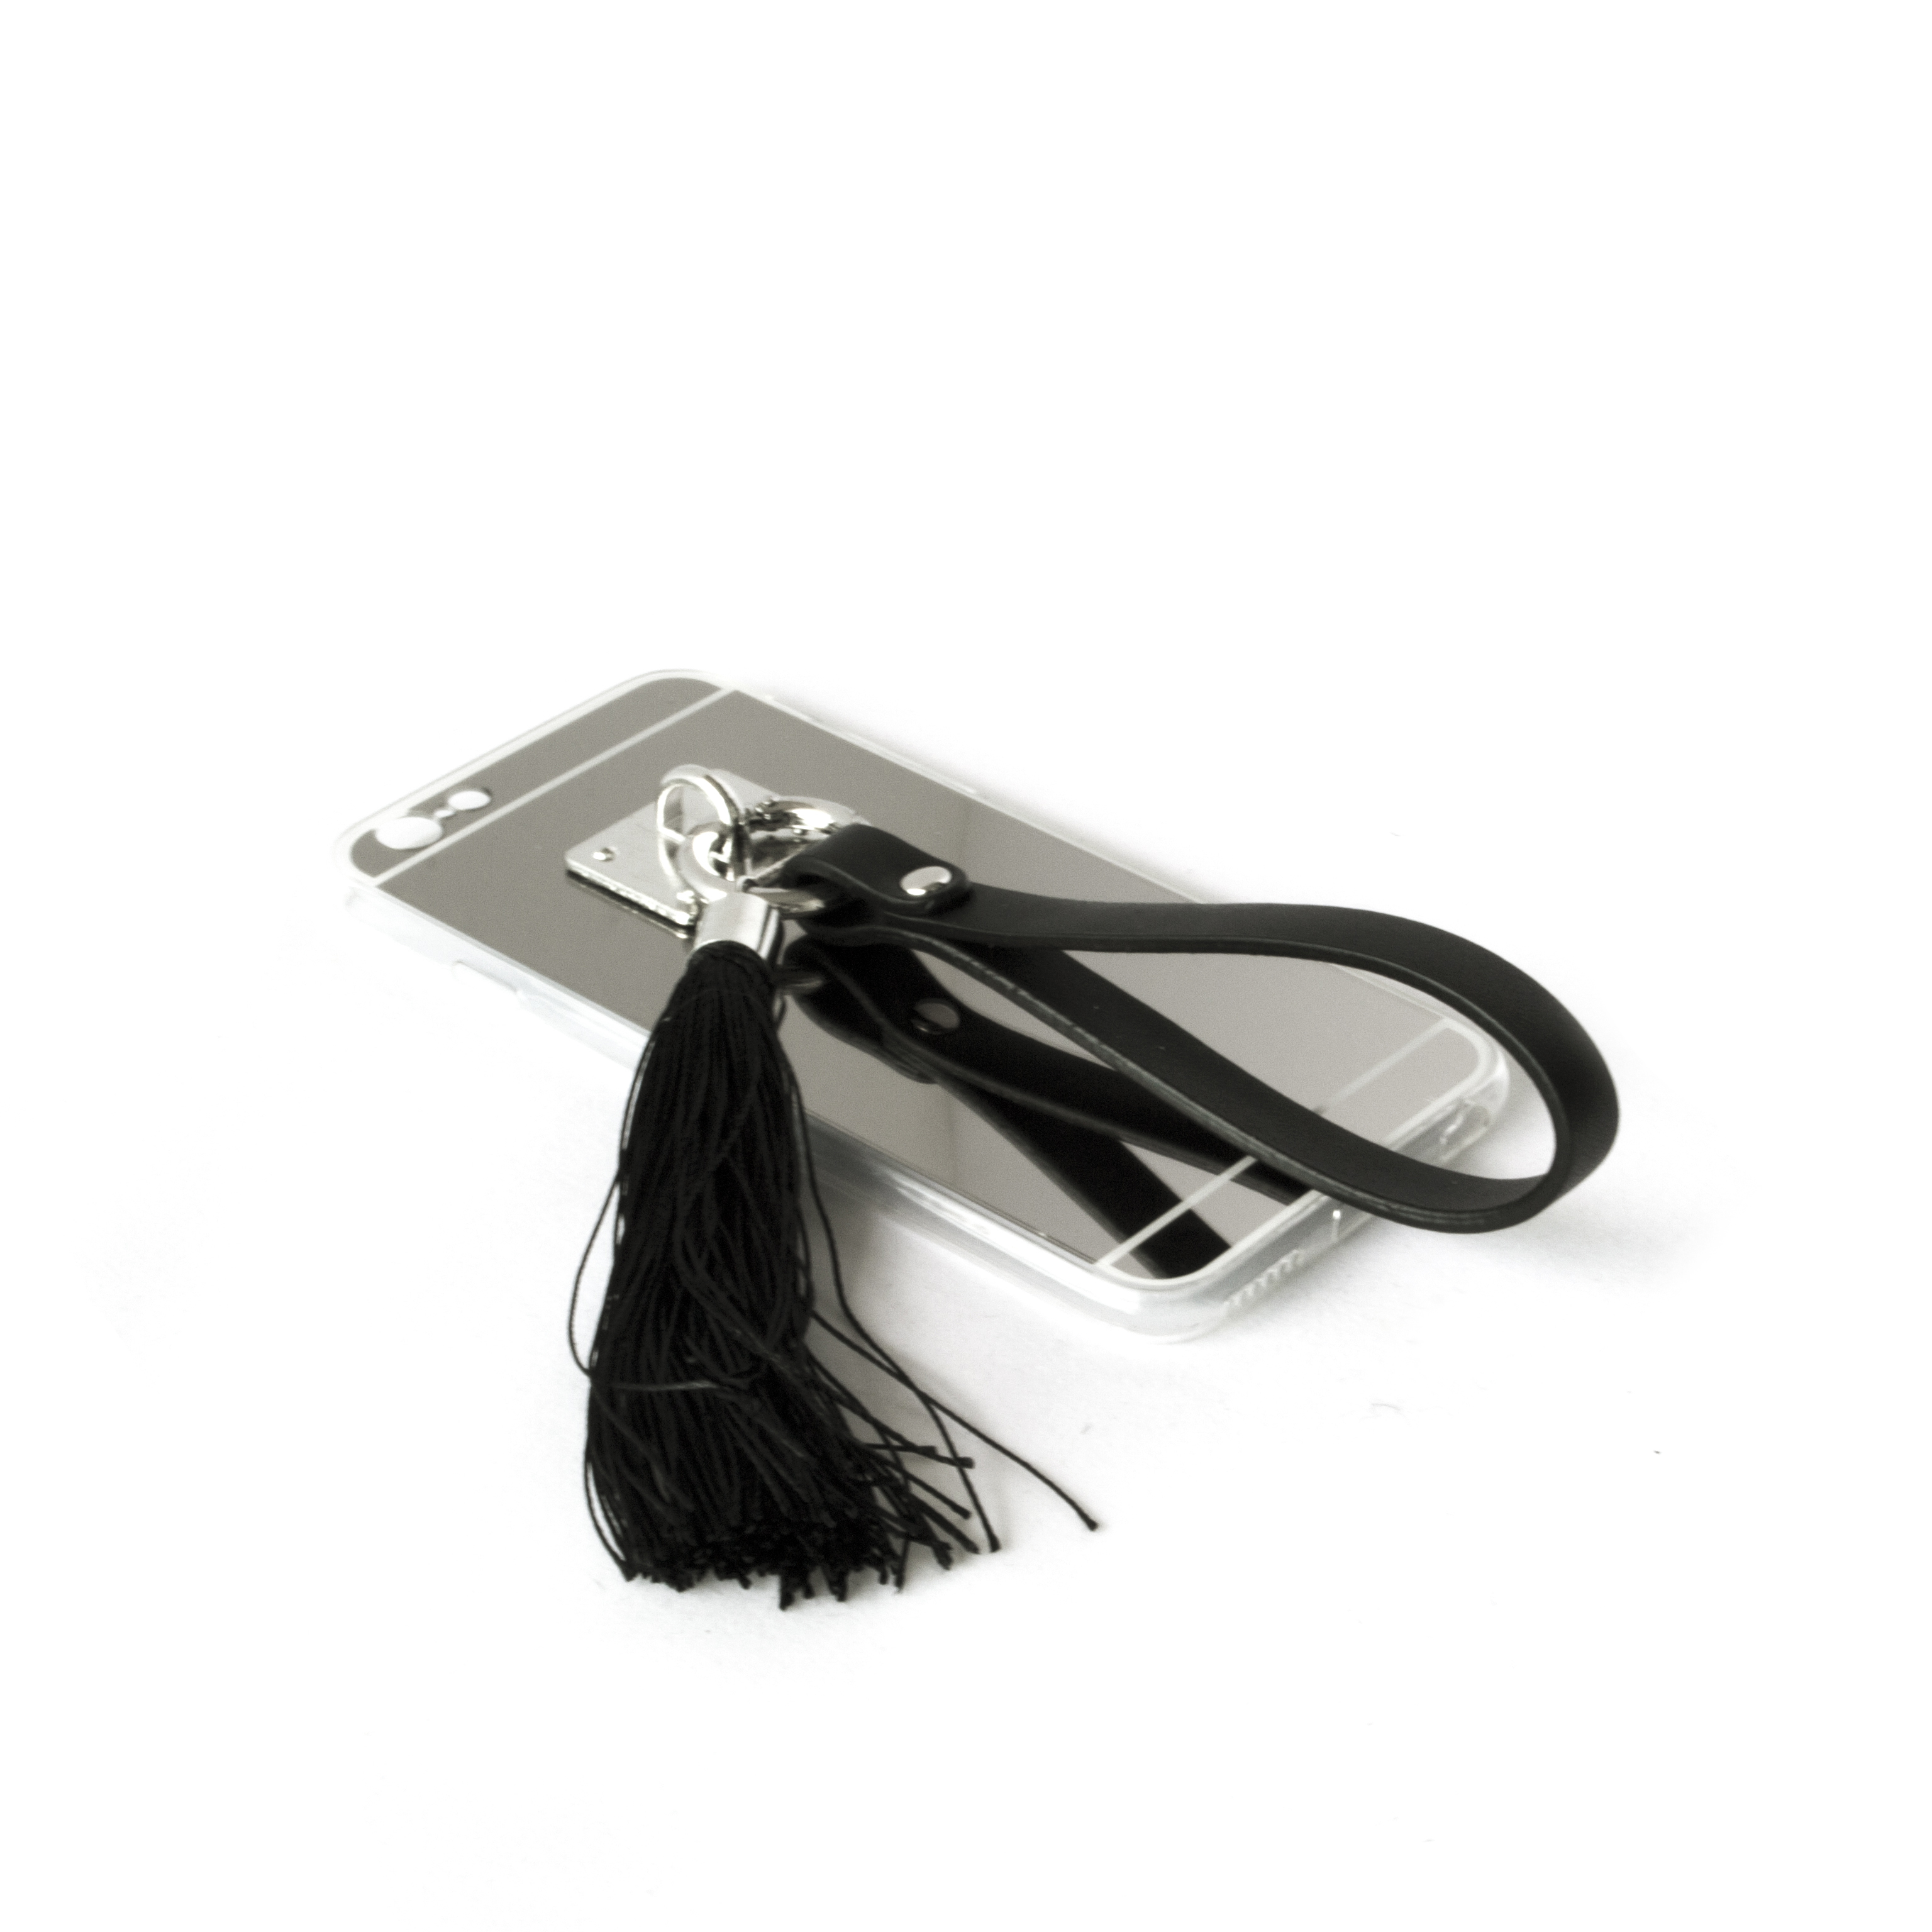 Manacle Tassel Case - Reflective Silver Mirror